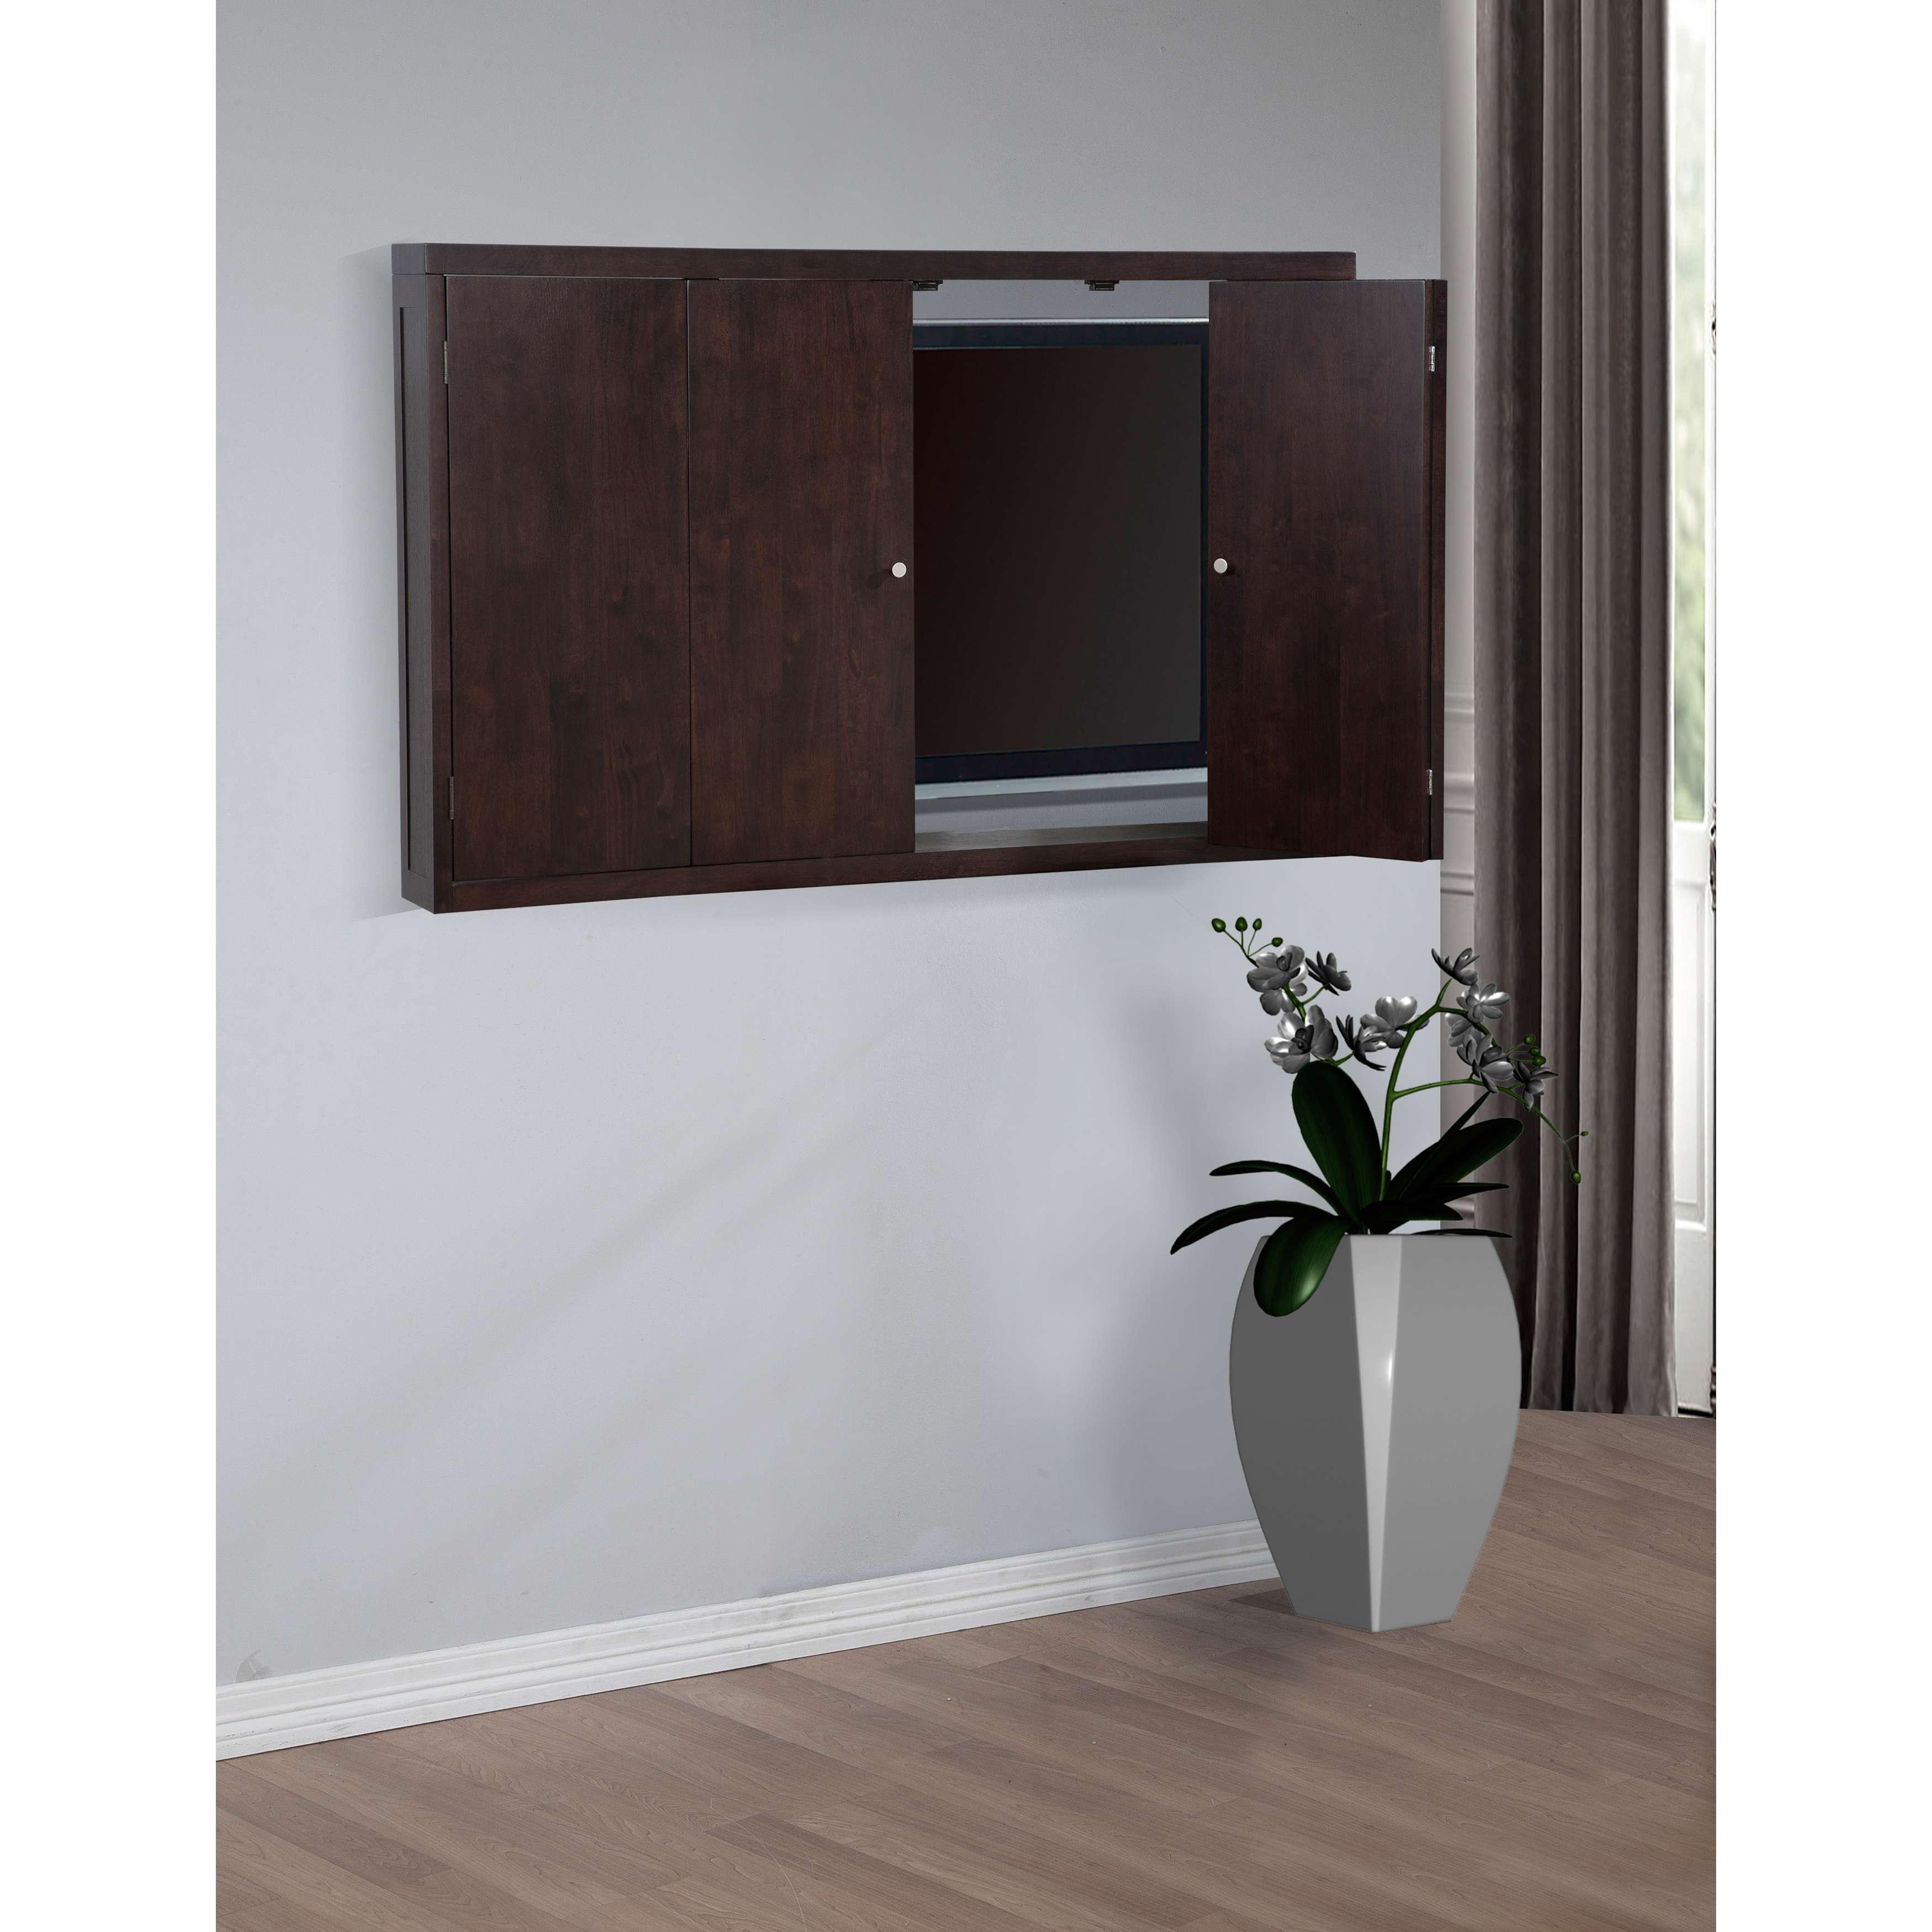 Simple Wall Mounted Tv Cabinet With Doors With Cool Flower On Vase Pertaining To Wall Mounted Tv Cabinets With Doors (View 13 of 20)